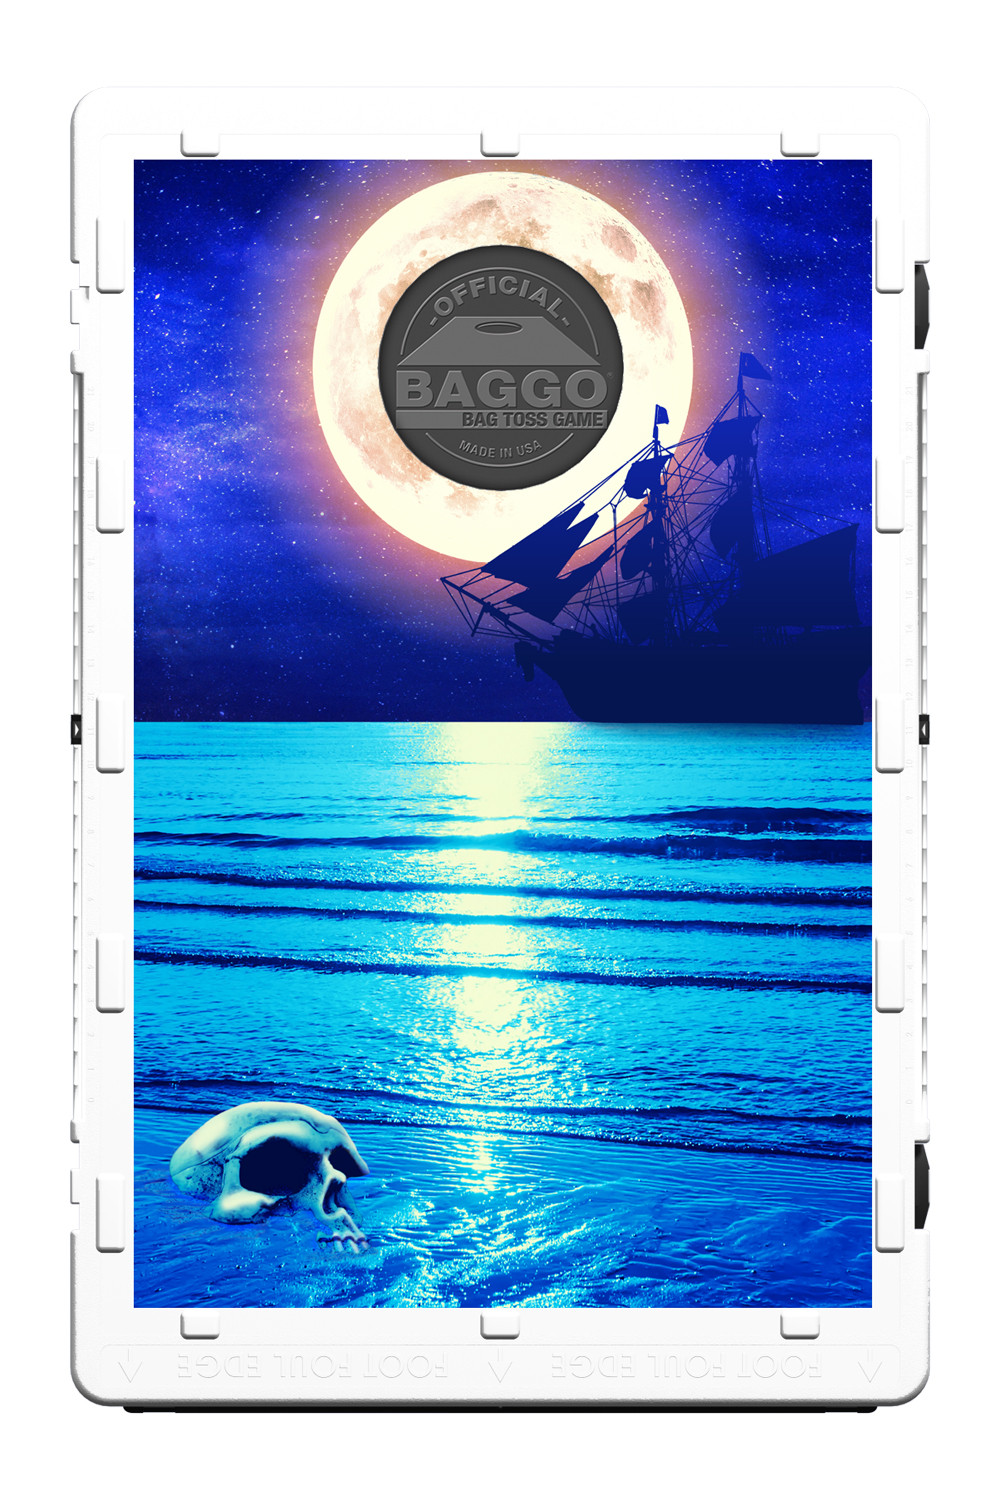 Pirate Moonset Screens (only) by Baggo